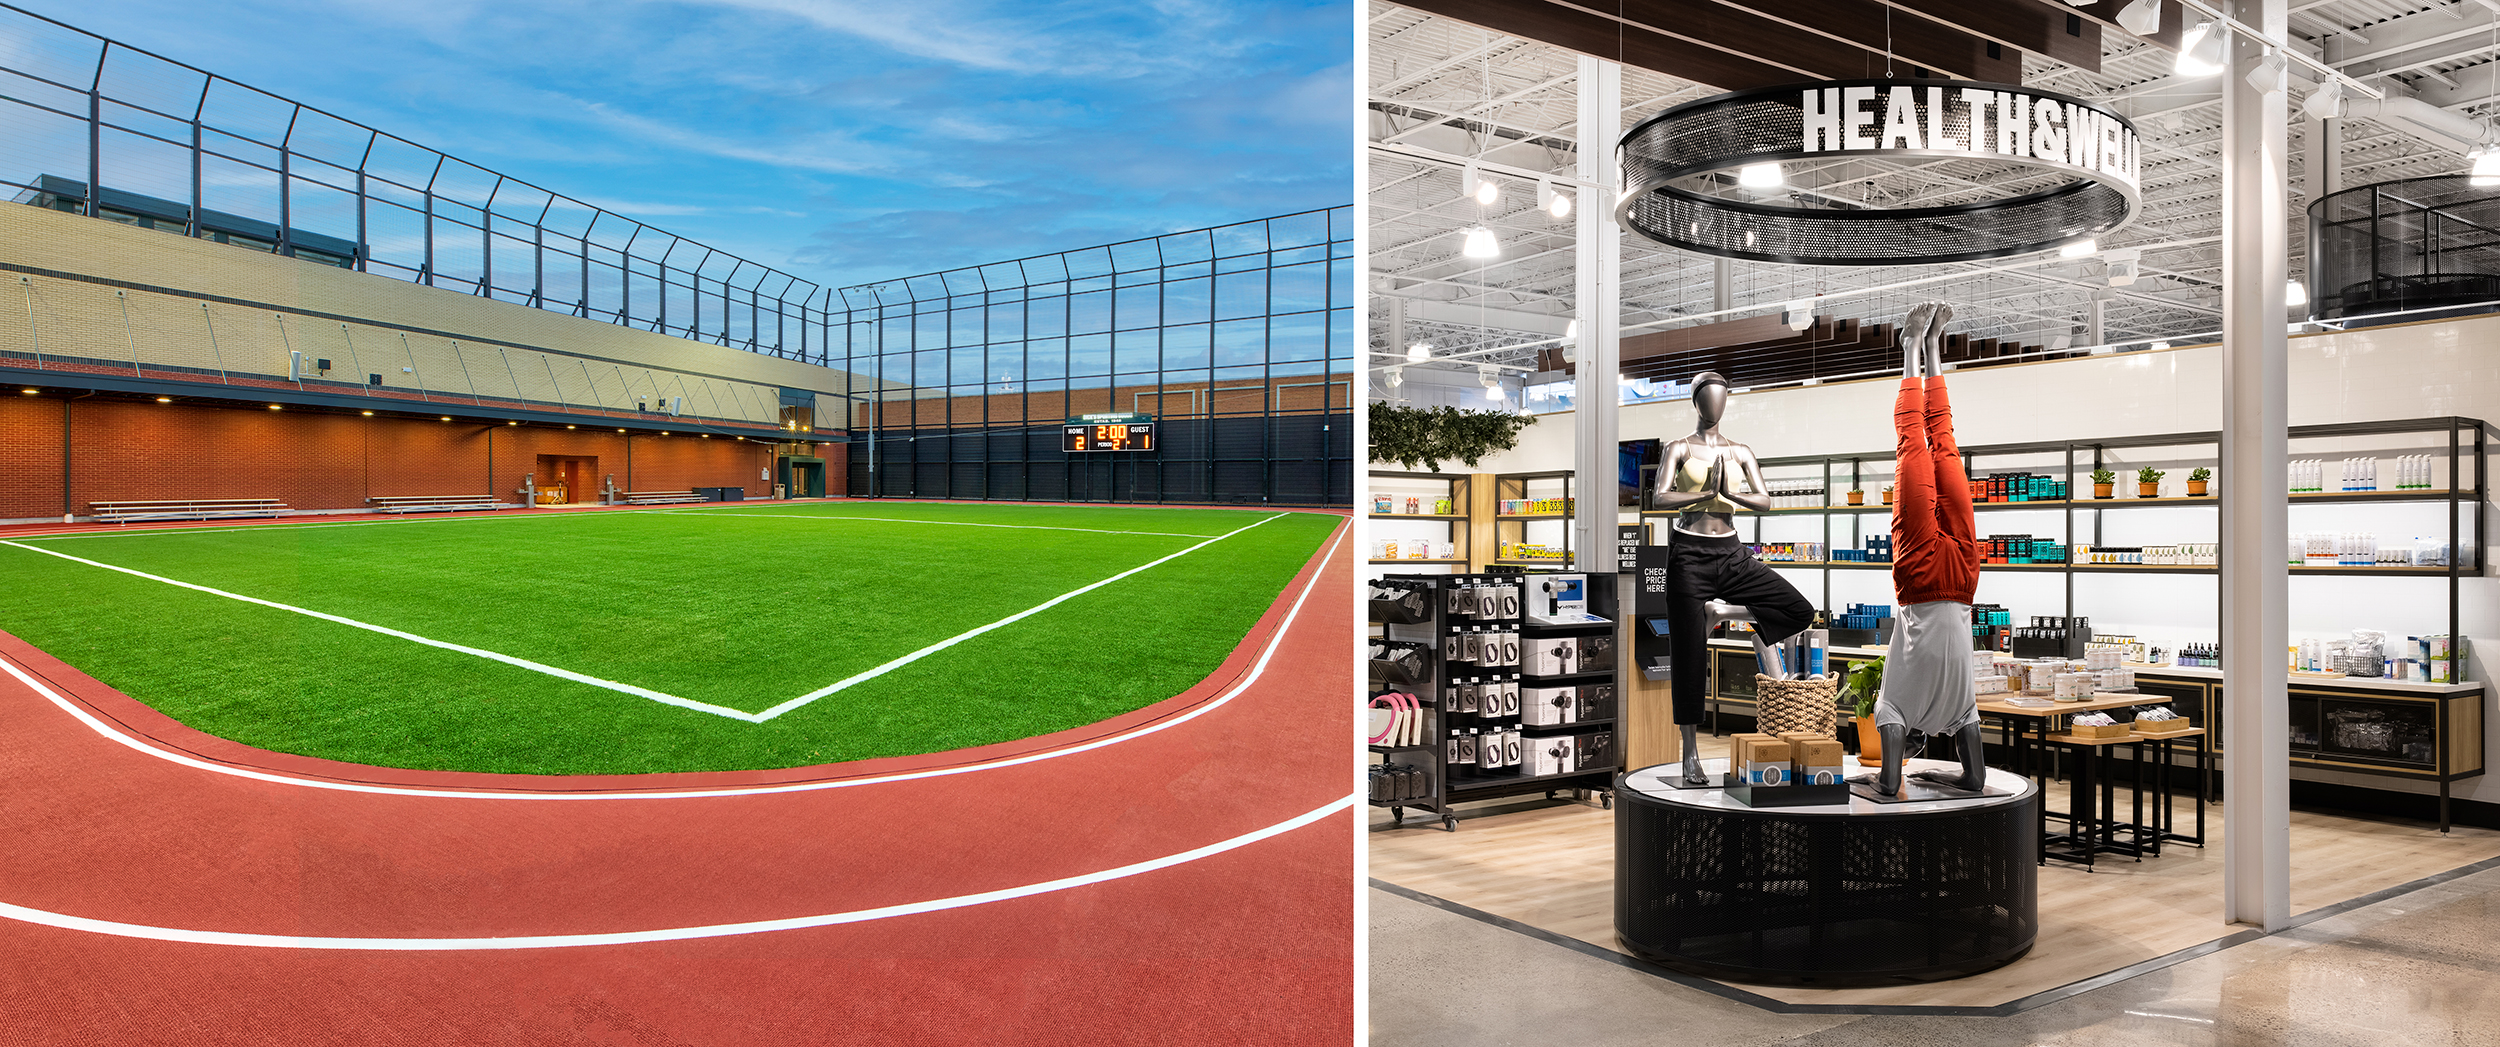 An outdoor turf field and in-store health and wellness area support athletes' fitness goals from start to finish.